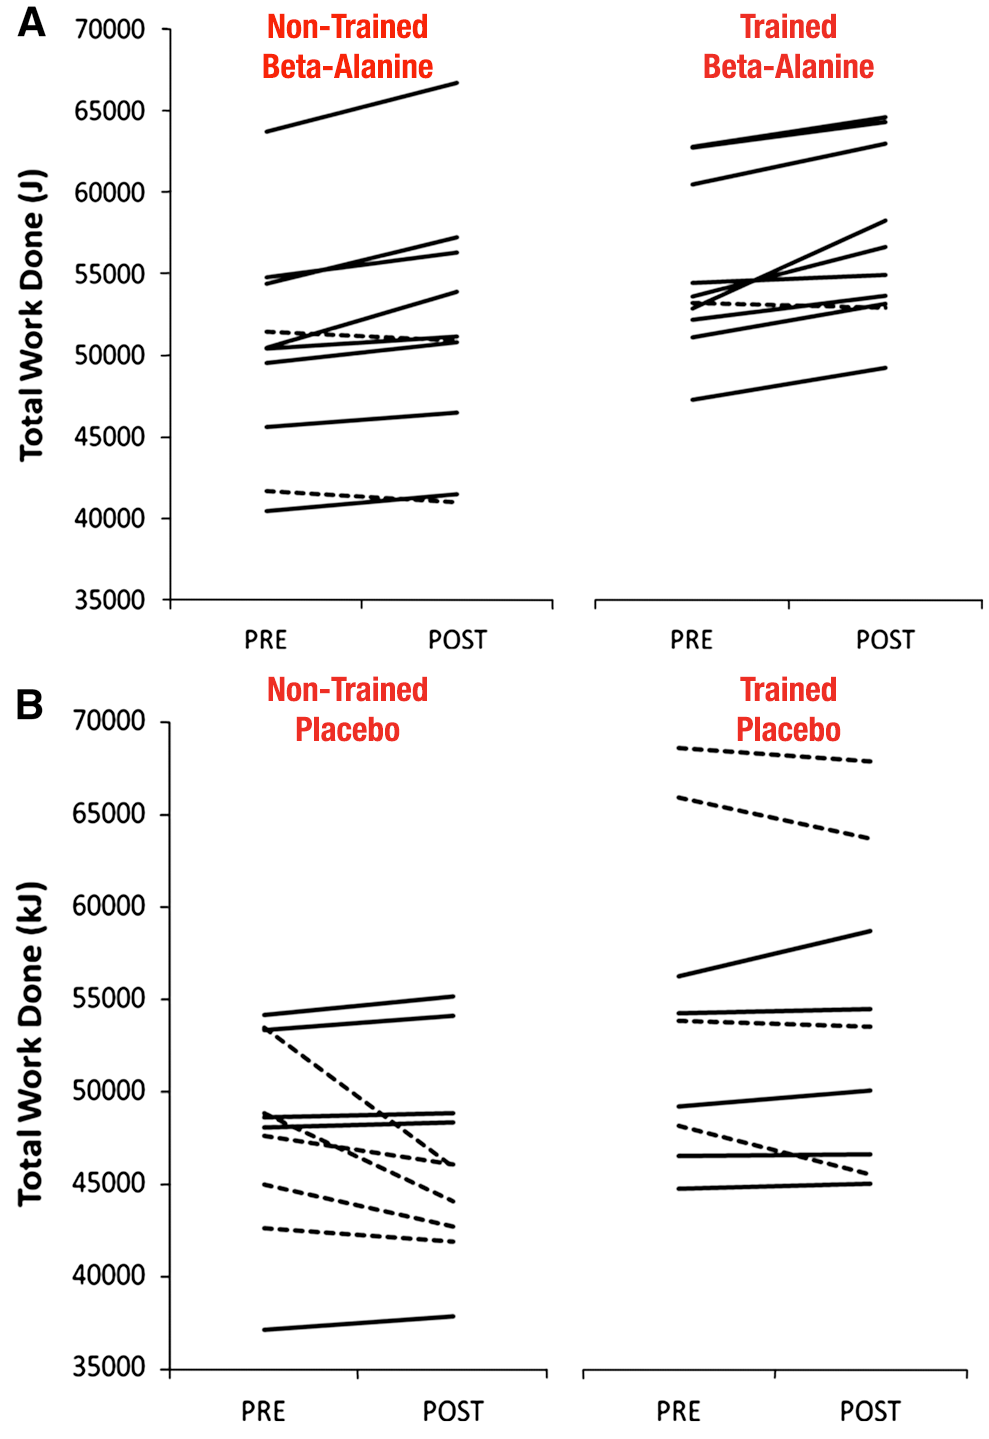 Trained vs untrained response to beta-alanine